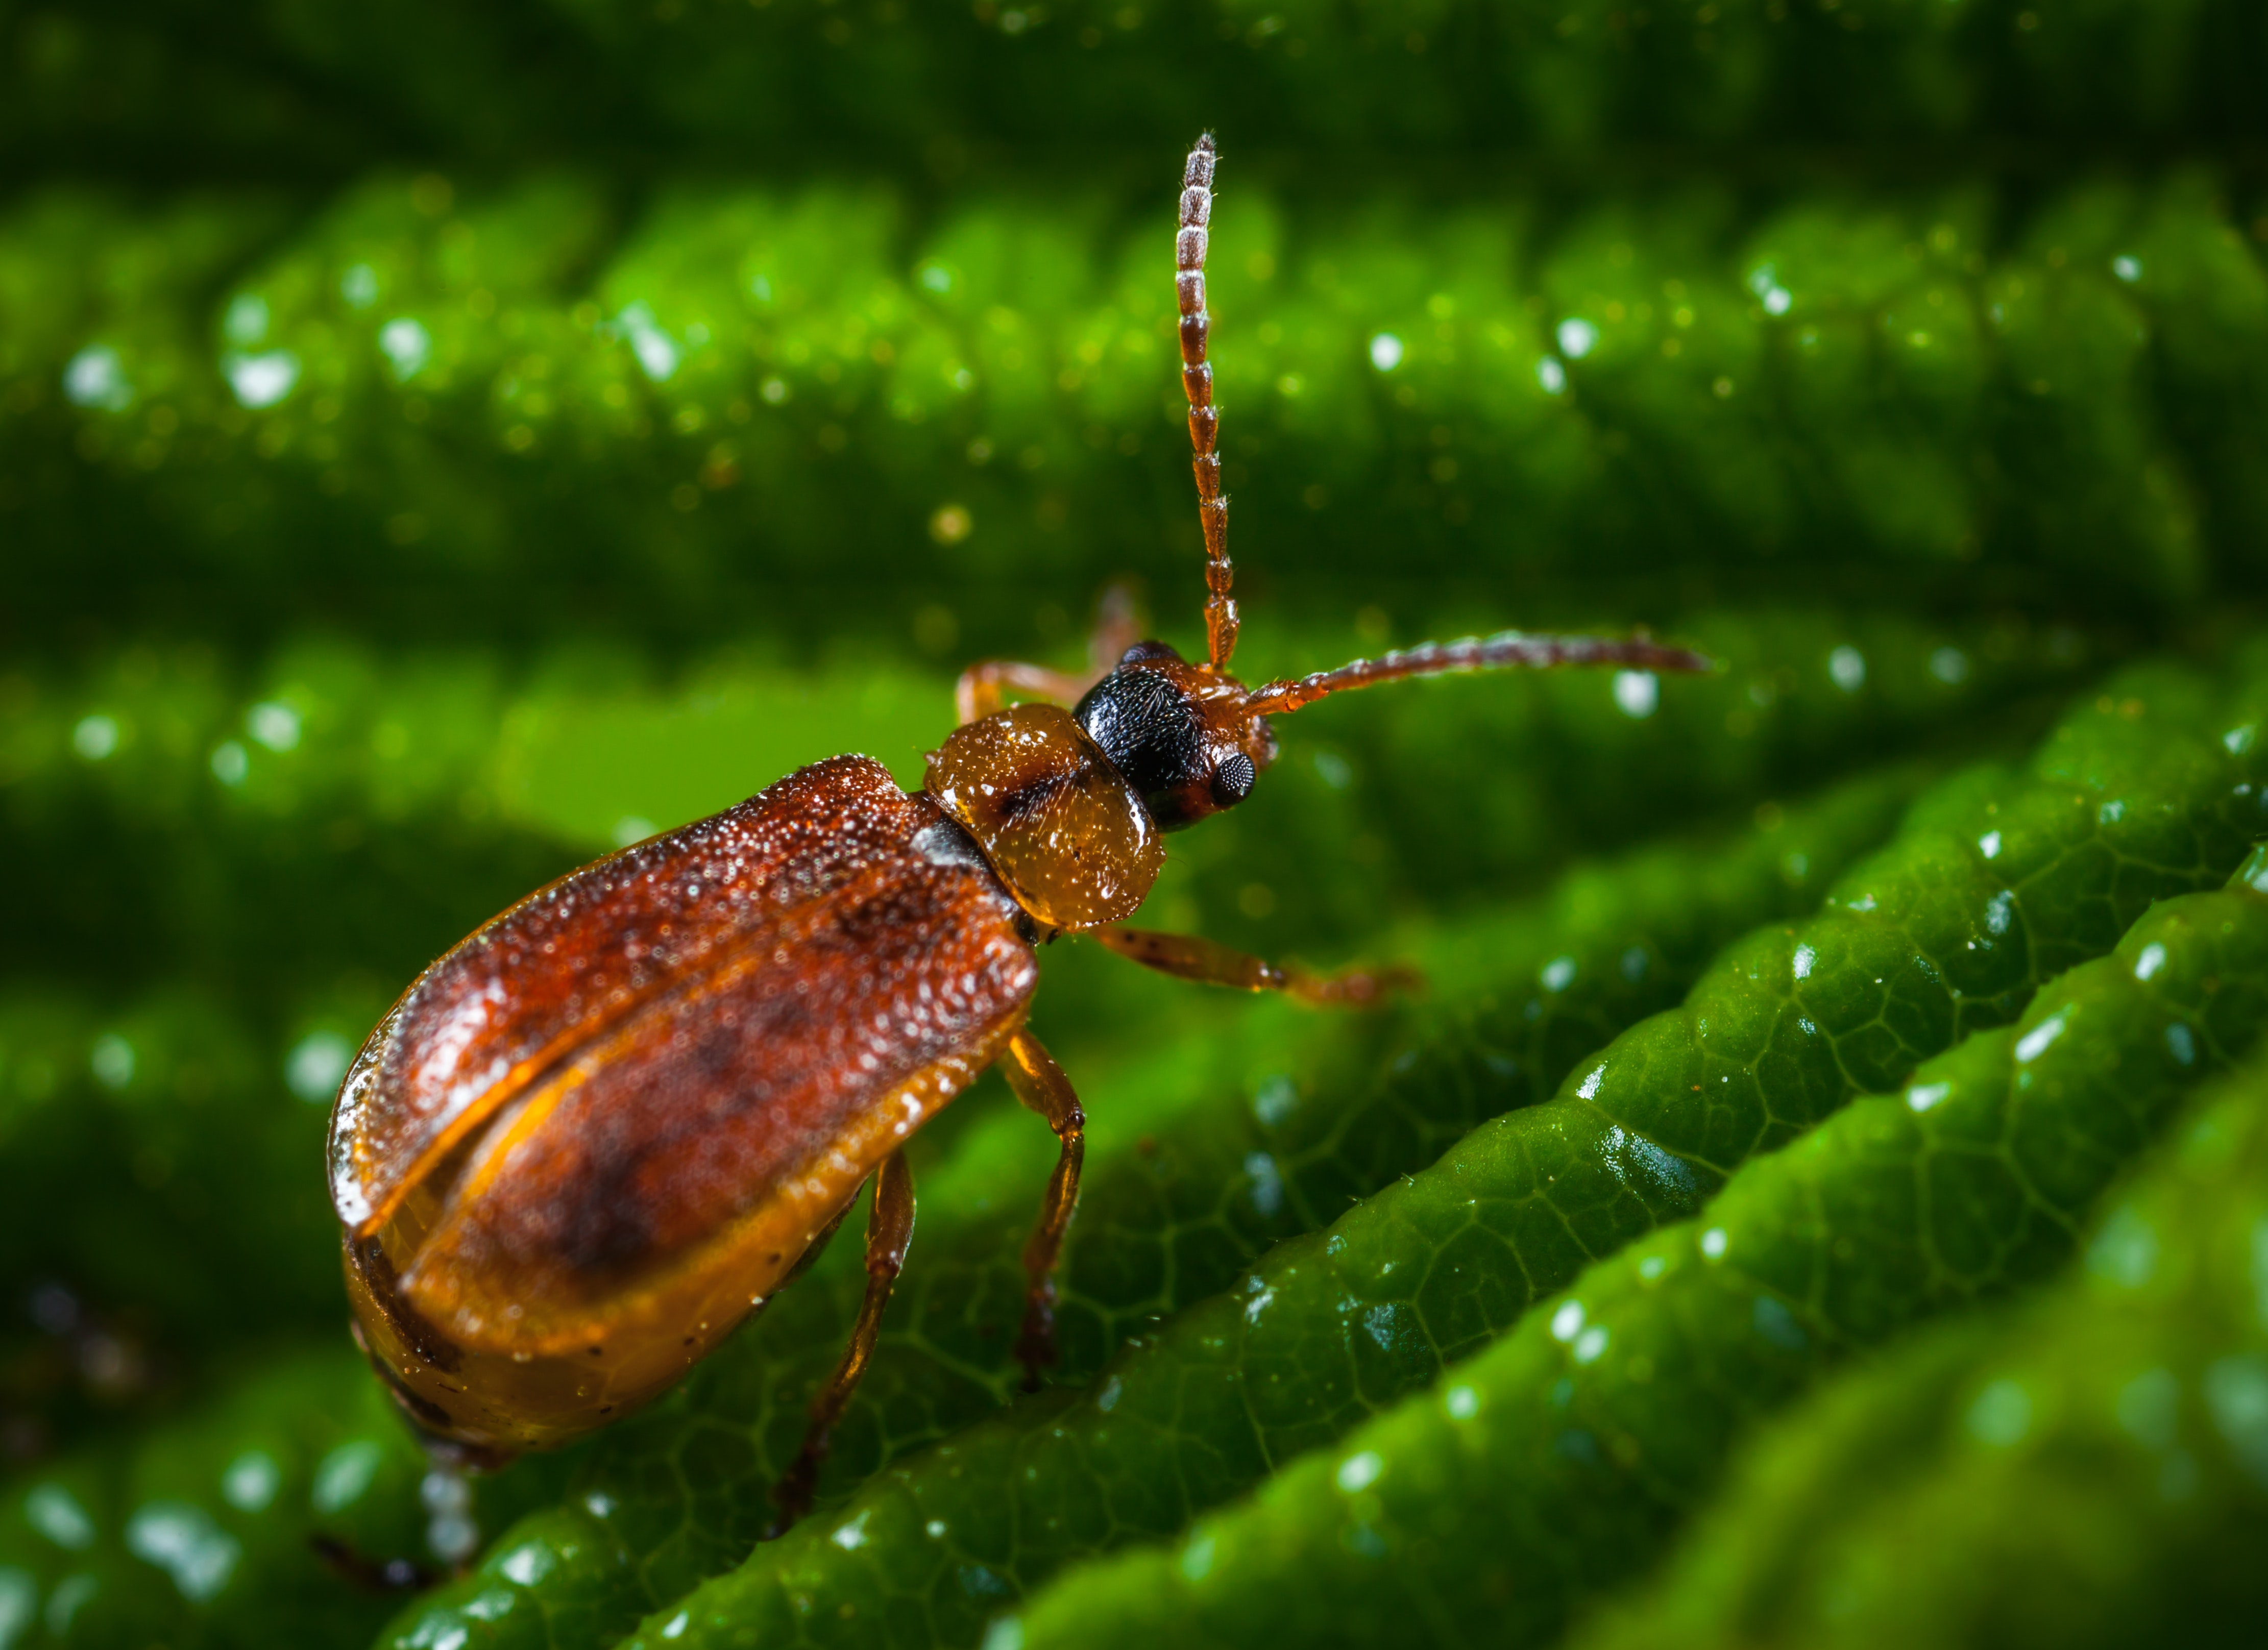 Brown blister beetle photo